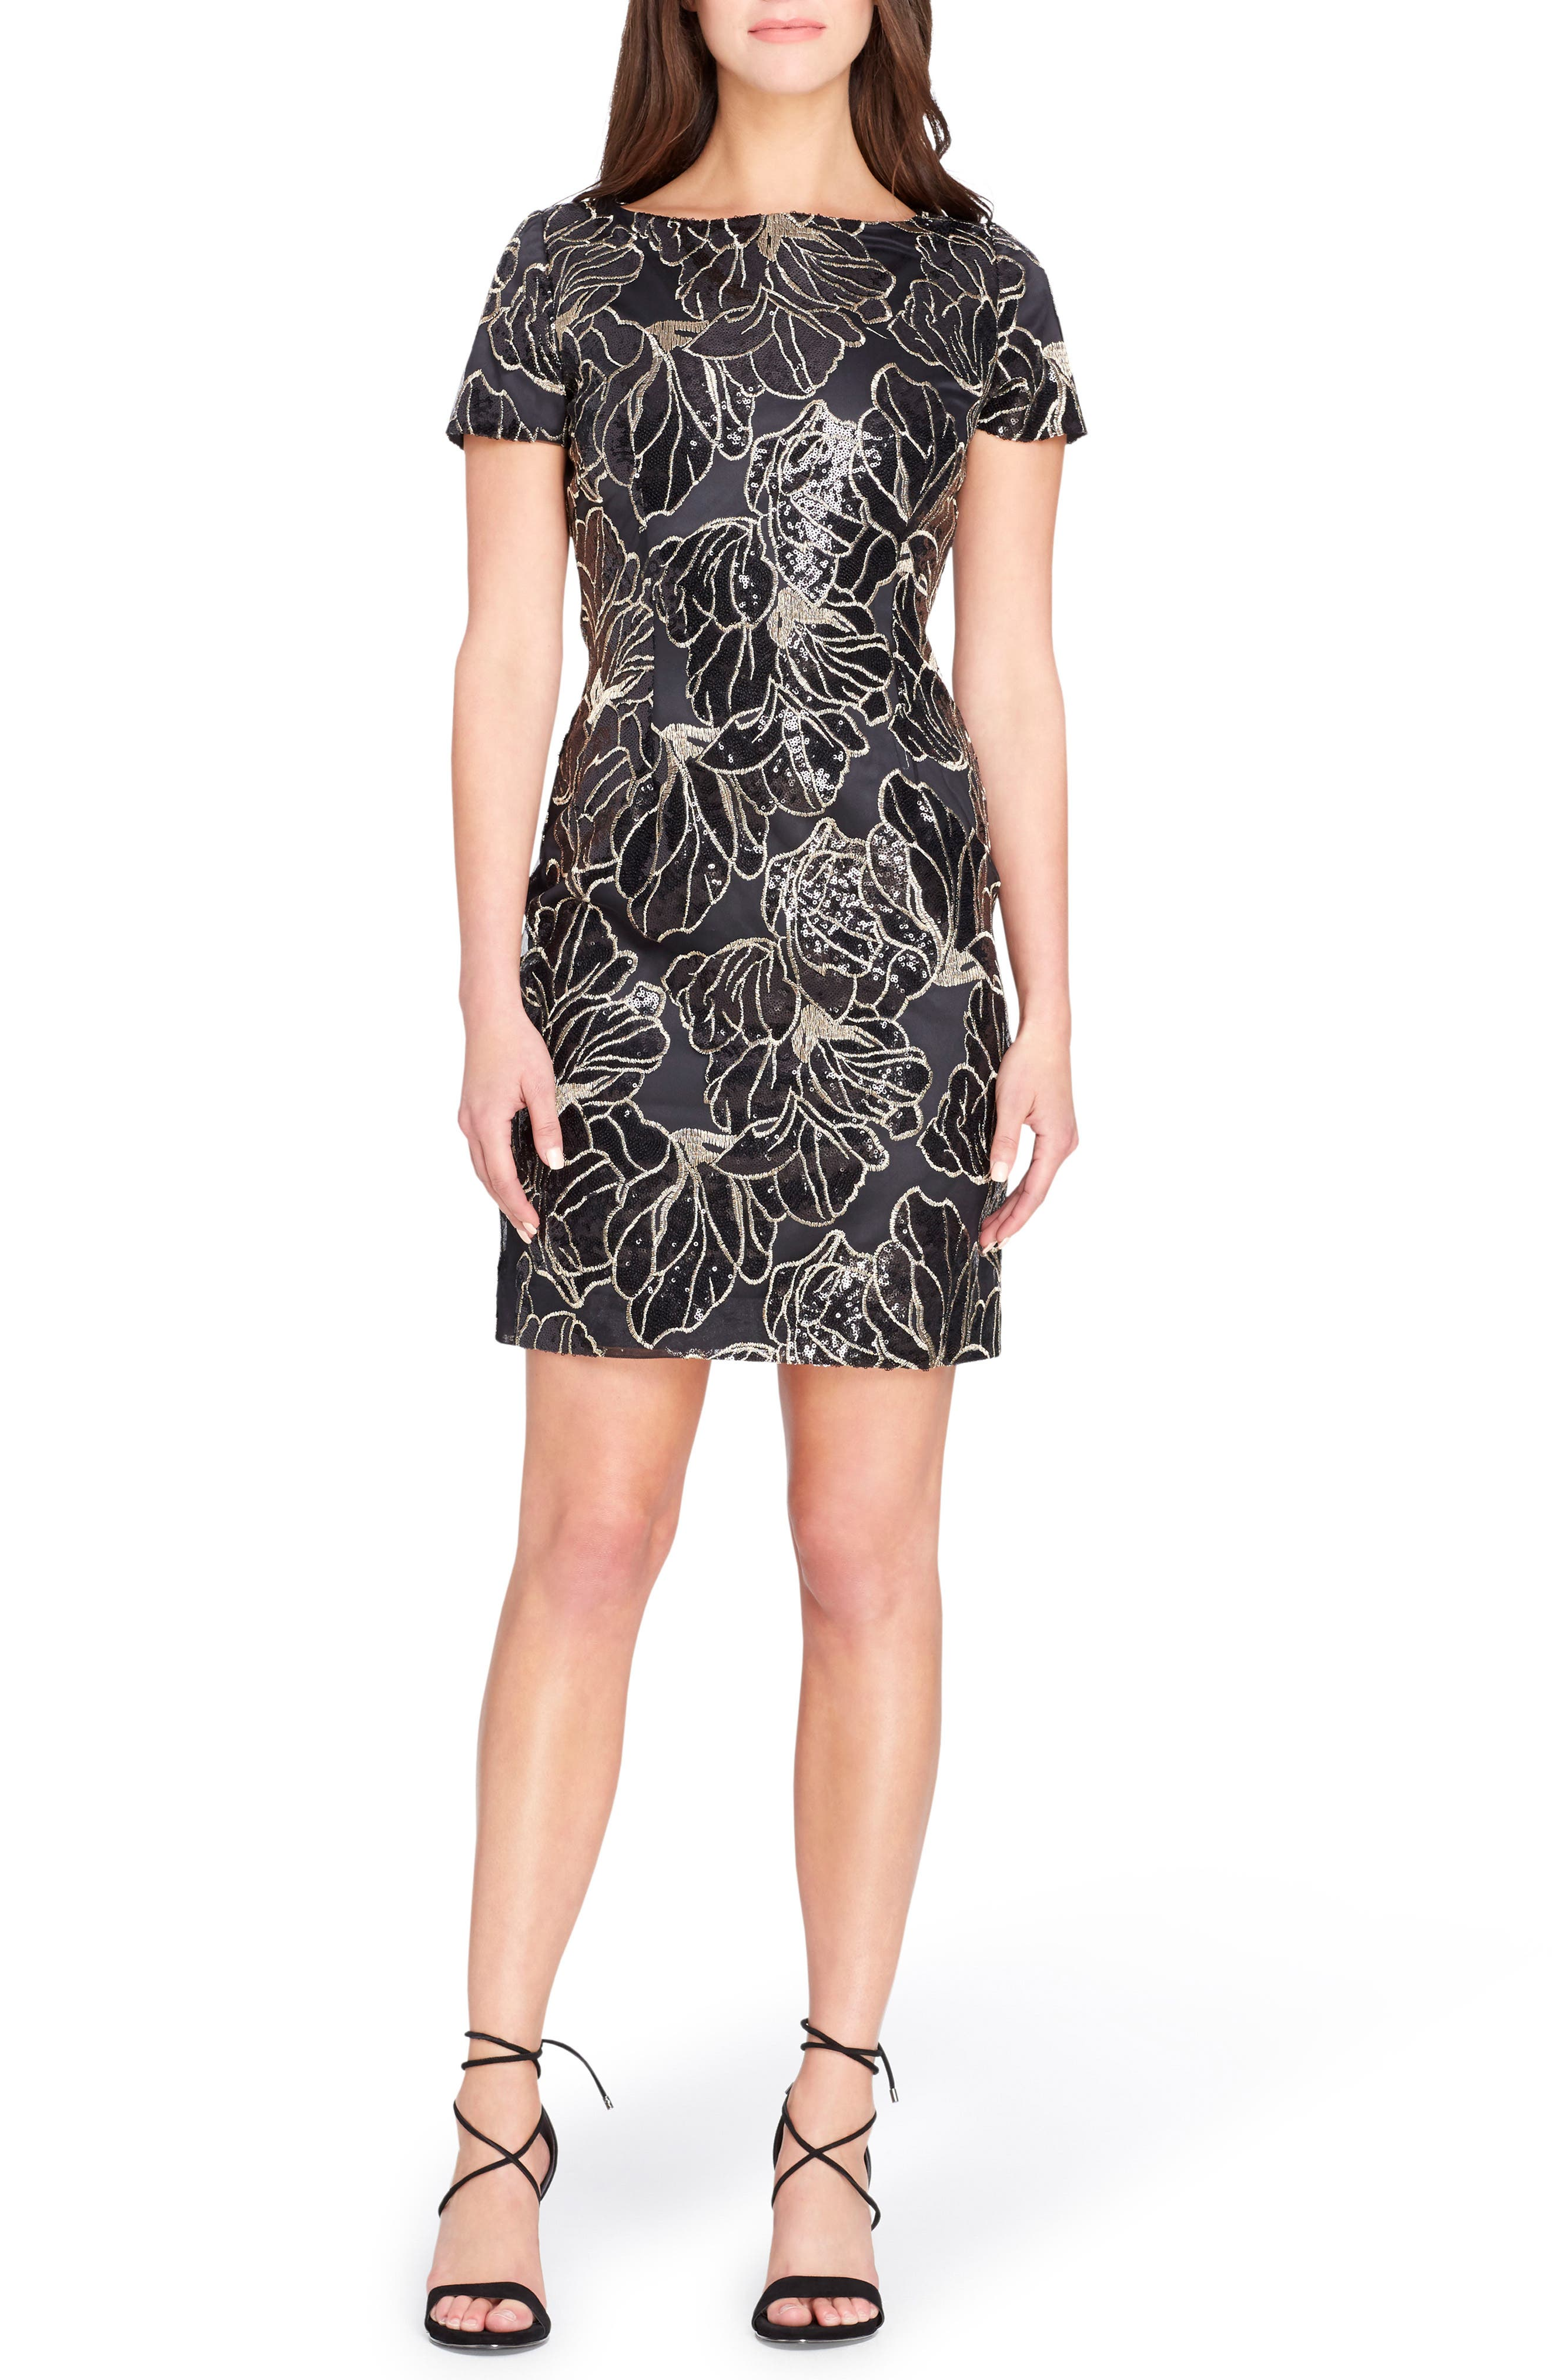 Sequin Floral Sheath Dress,                         Main,                         color, Black/ Gold